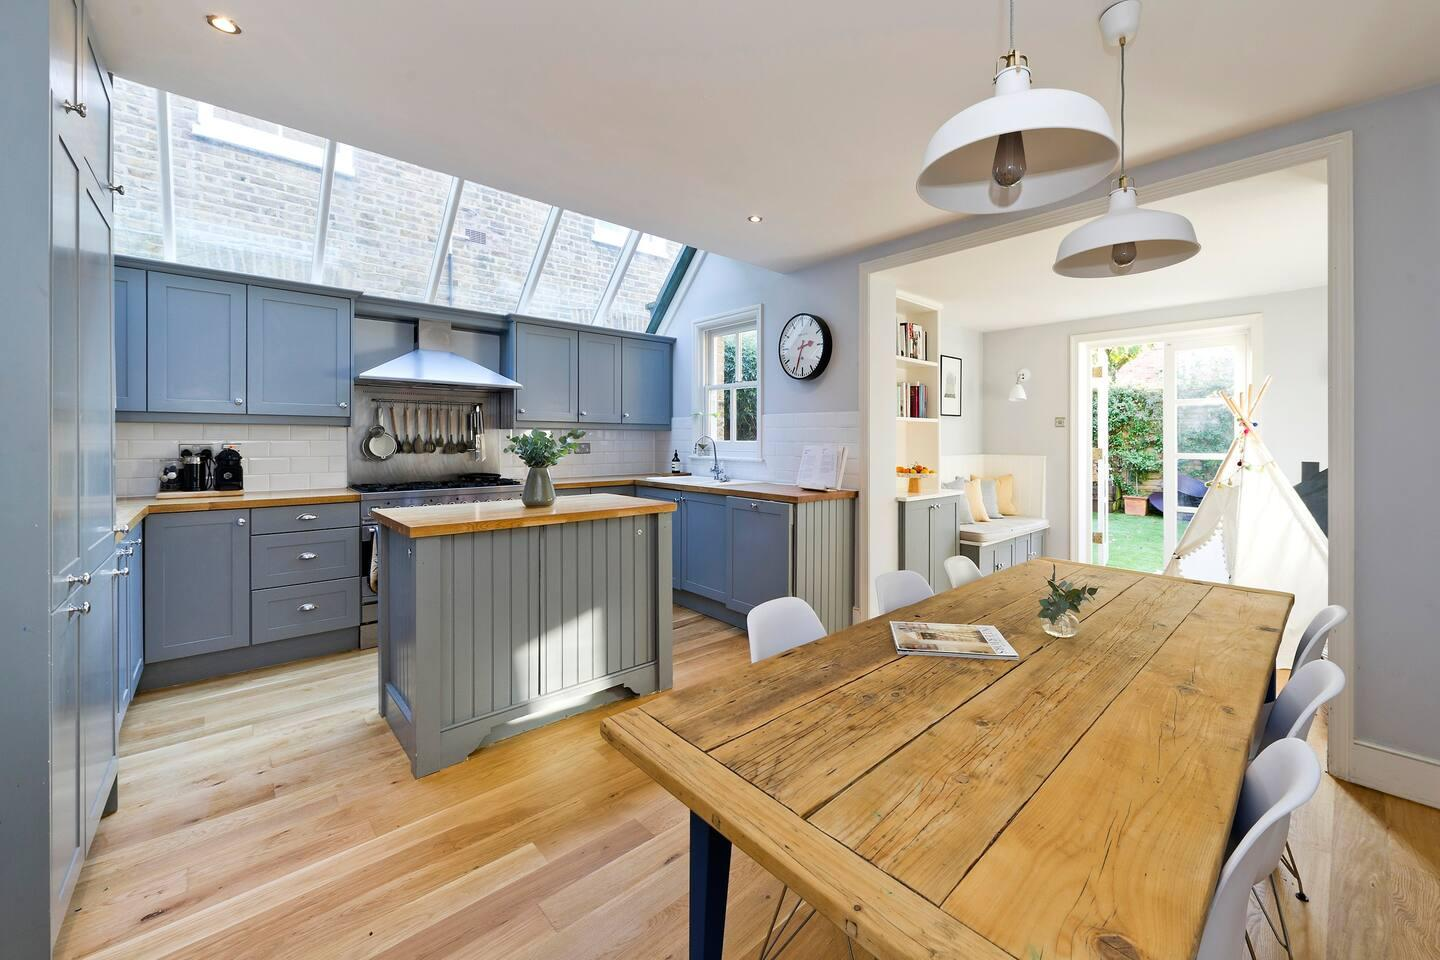 Property Image 1 - Delightful Family House with Farmhouse Kitchen